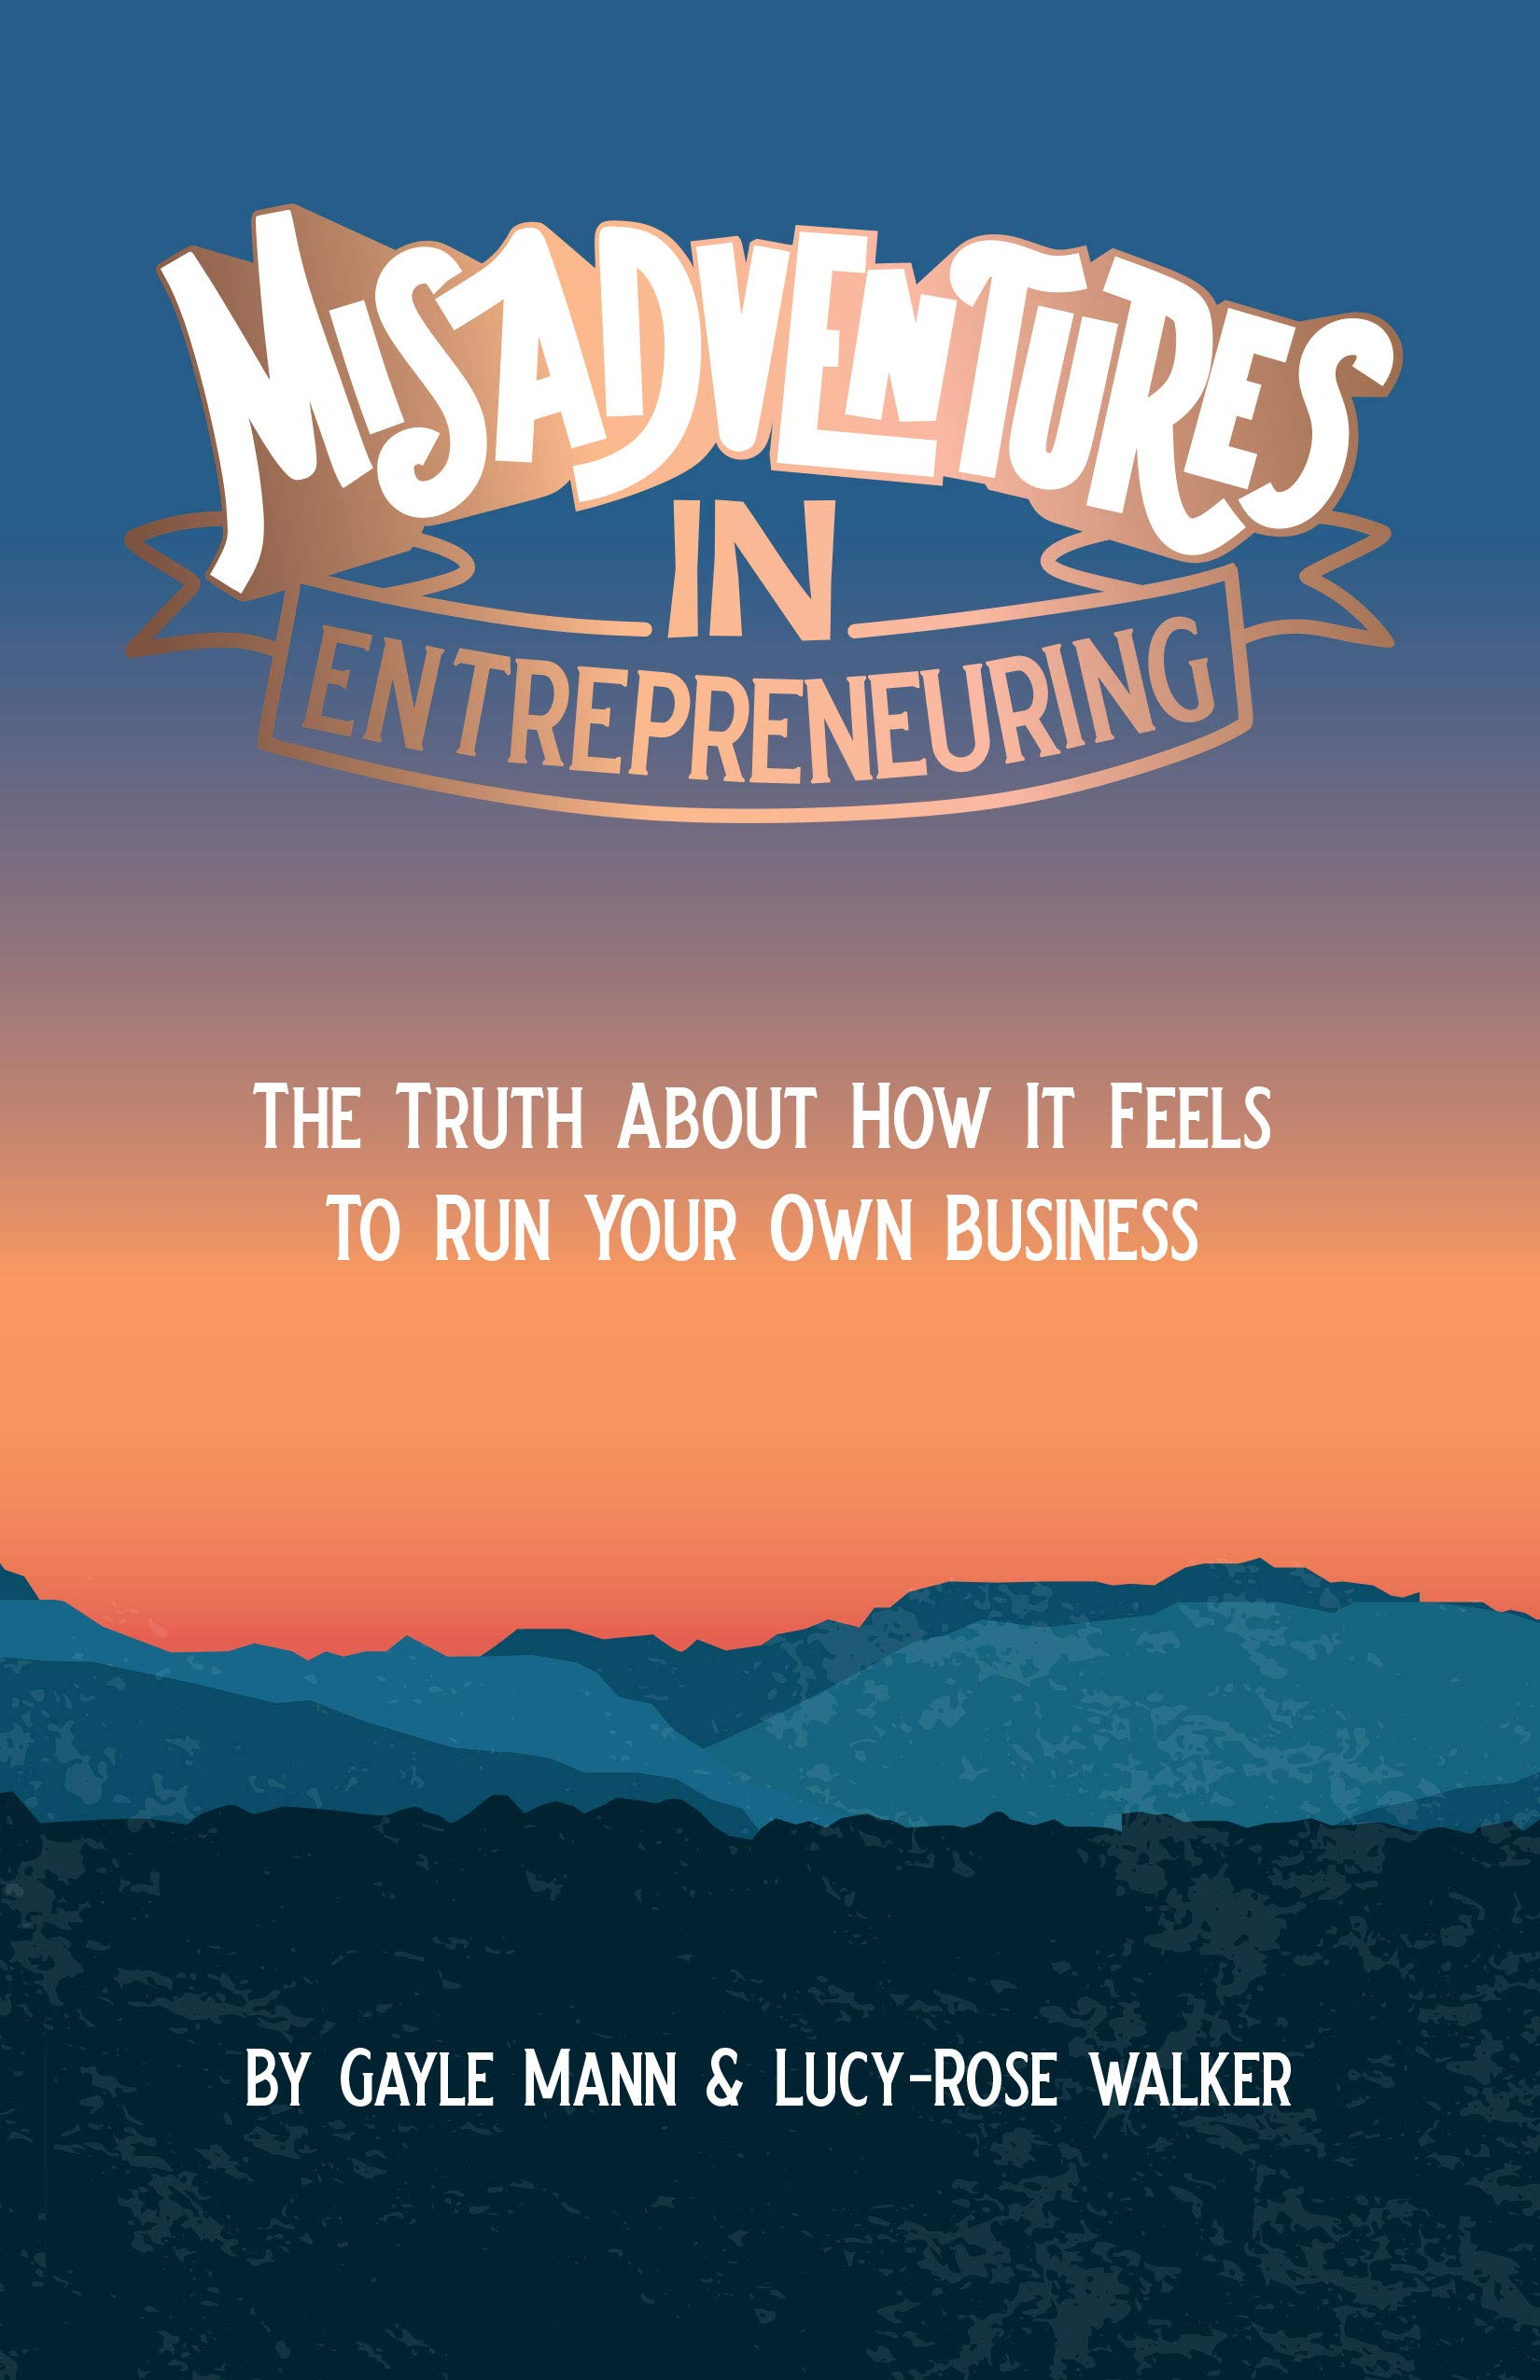 Misadventures in Entrepreneuring: The truth about how it feels to run your own business